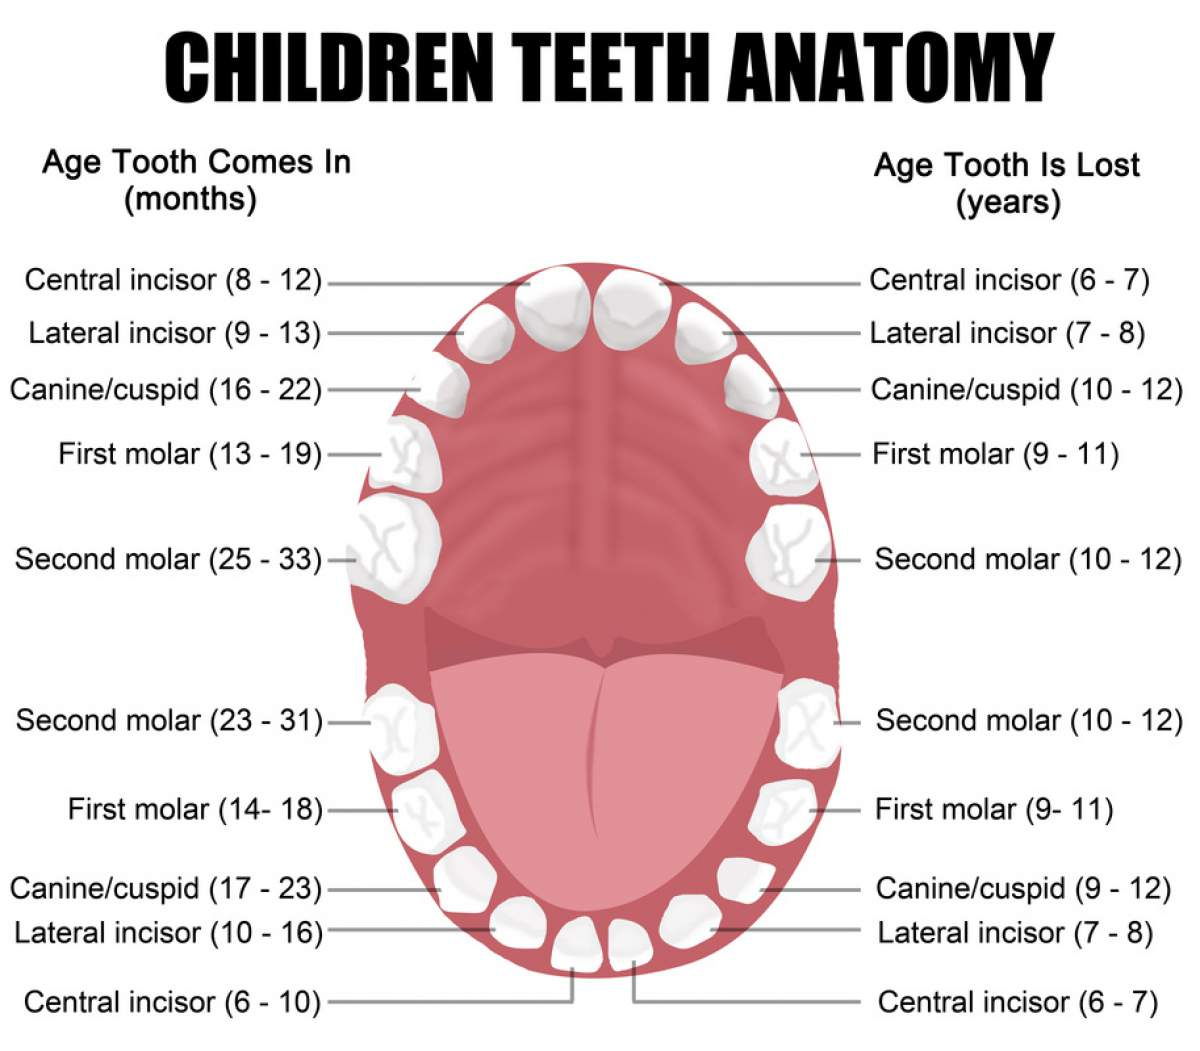 Children Teeth Anatomy Houston Dental Houston Dentist 713 597 7880